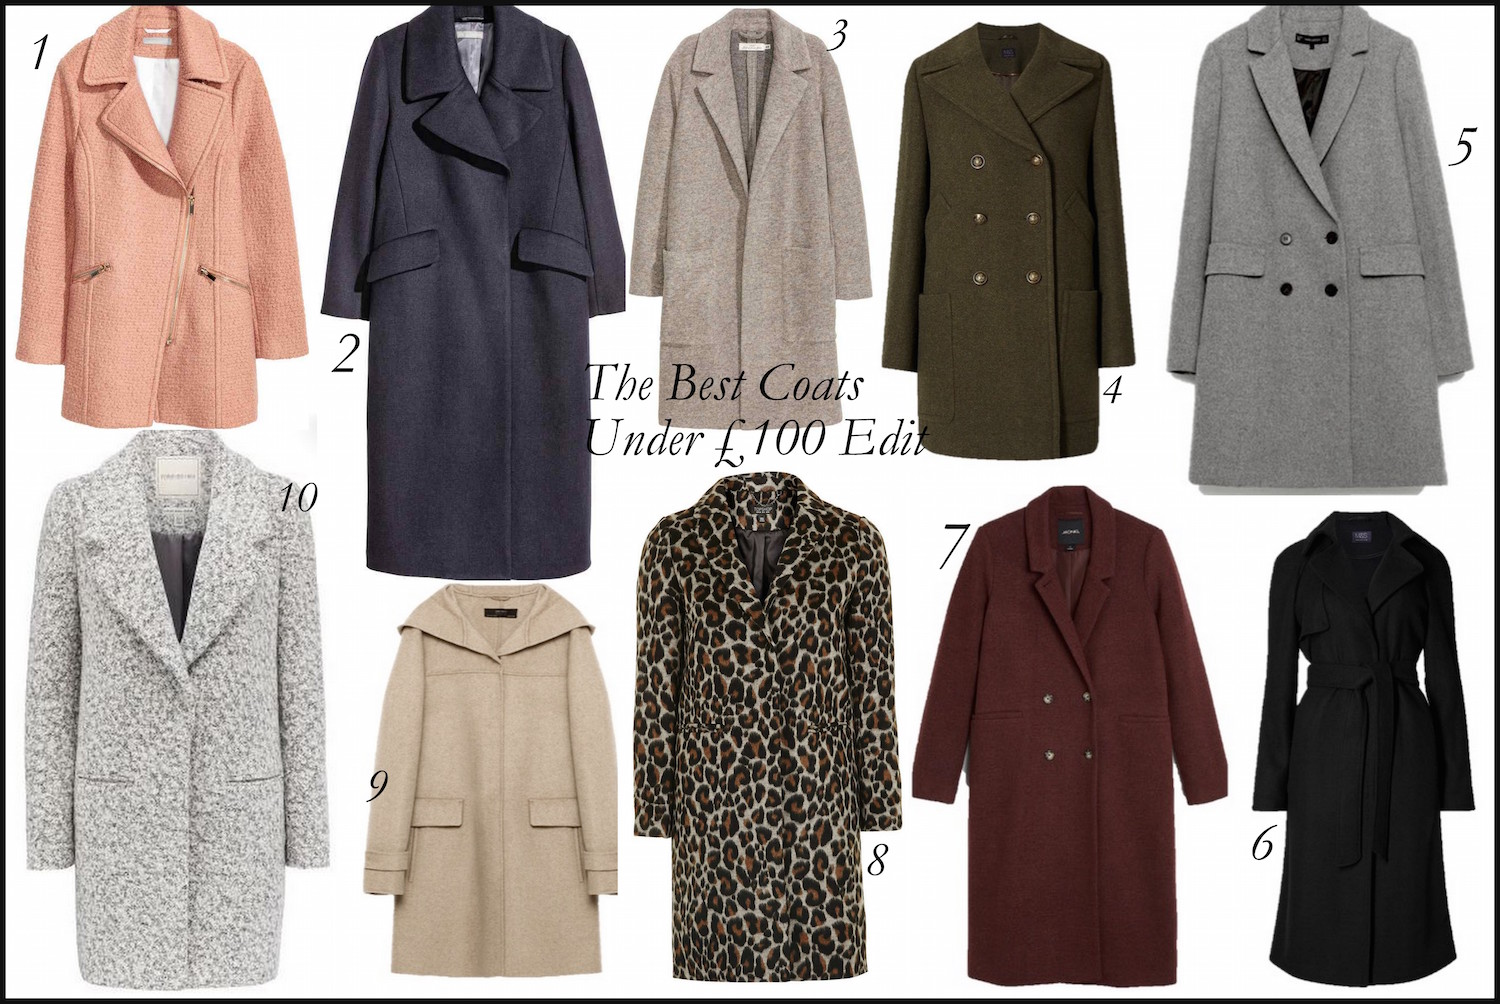 The Best Coats Under £100 Edit | Wolf & Stag